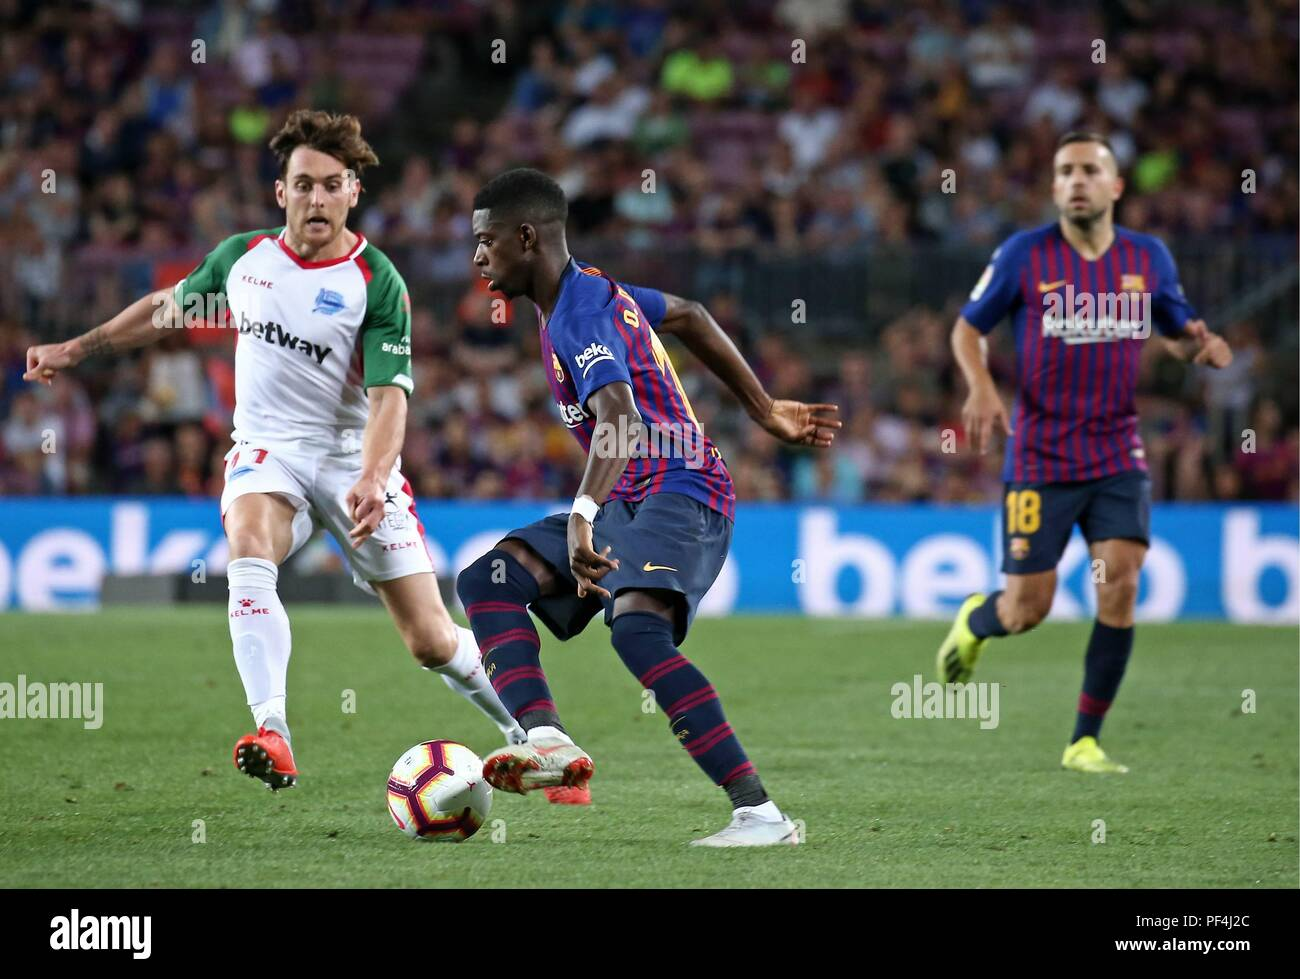 Barcelona, Spain. 18 August 2018. Ousmane Dembele during the match between FC Barcelona and Deportivo Alaves, correspondiong to the week 1 of the spanish league, on 18th August 2018. Photo: Joan Valls/Urbanandsport/Cordon Press   Cordon Press Credit: CORDON PRESS/Alamy Live News - Stock Image